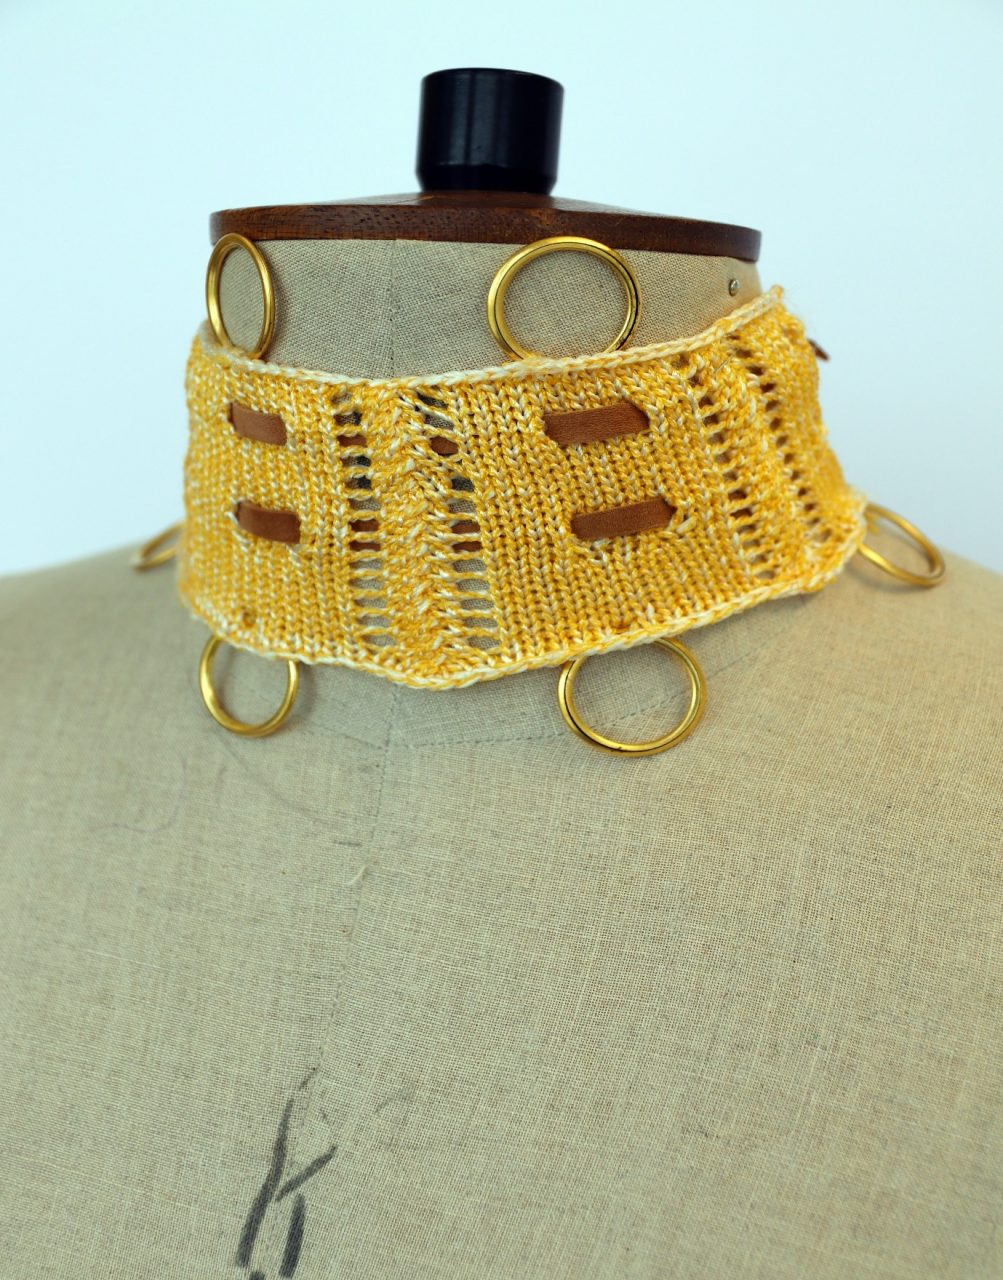 knitted choker with leather inserts and hoops